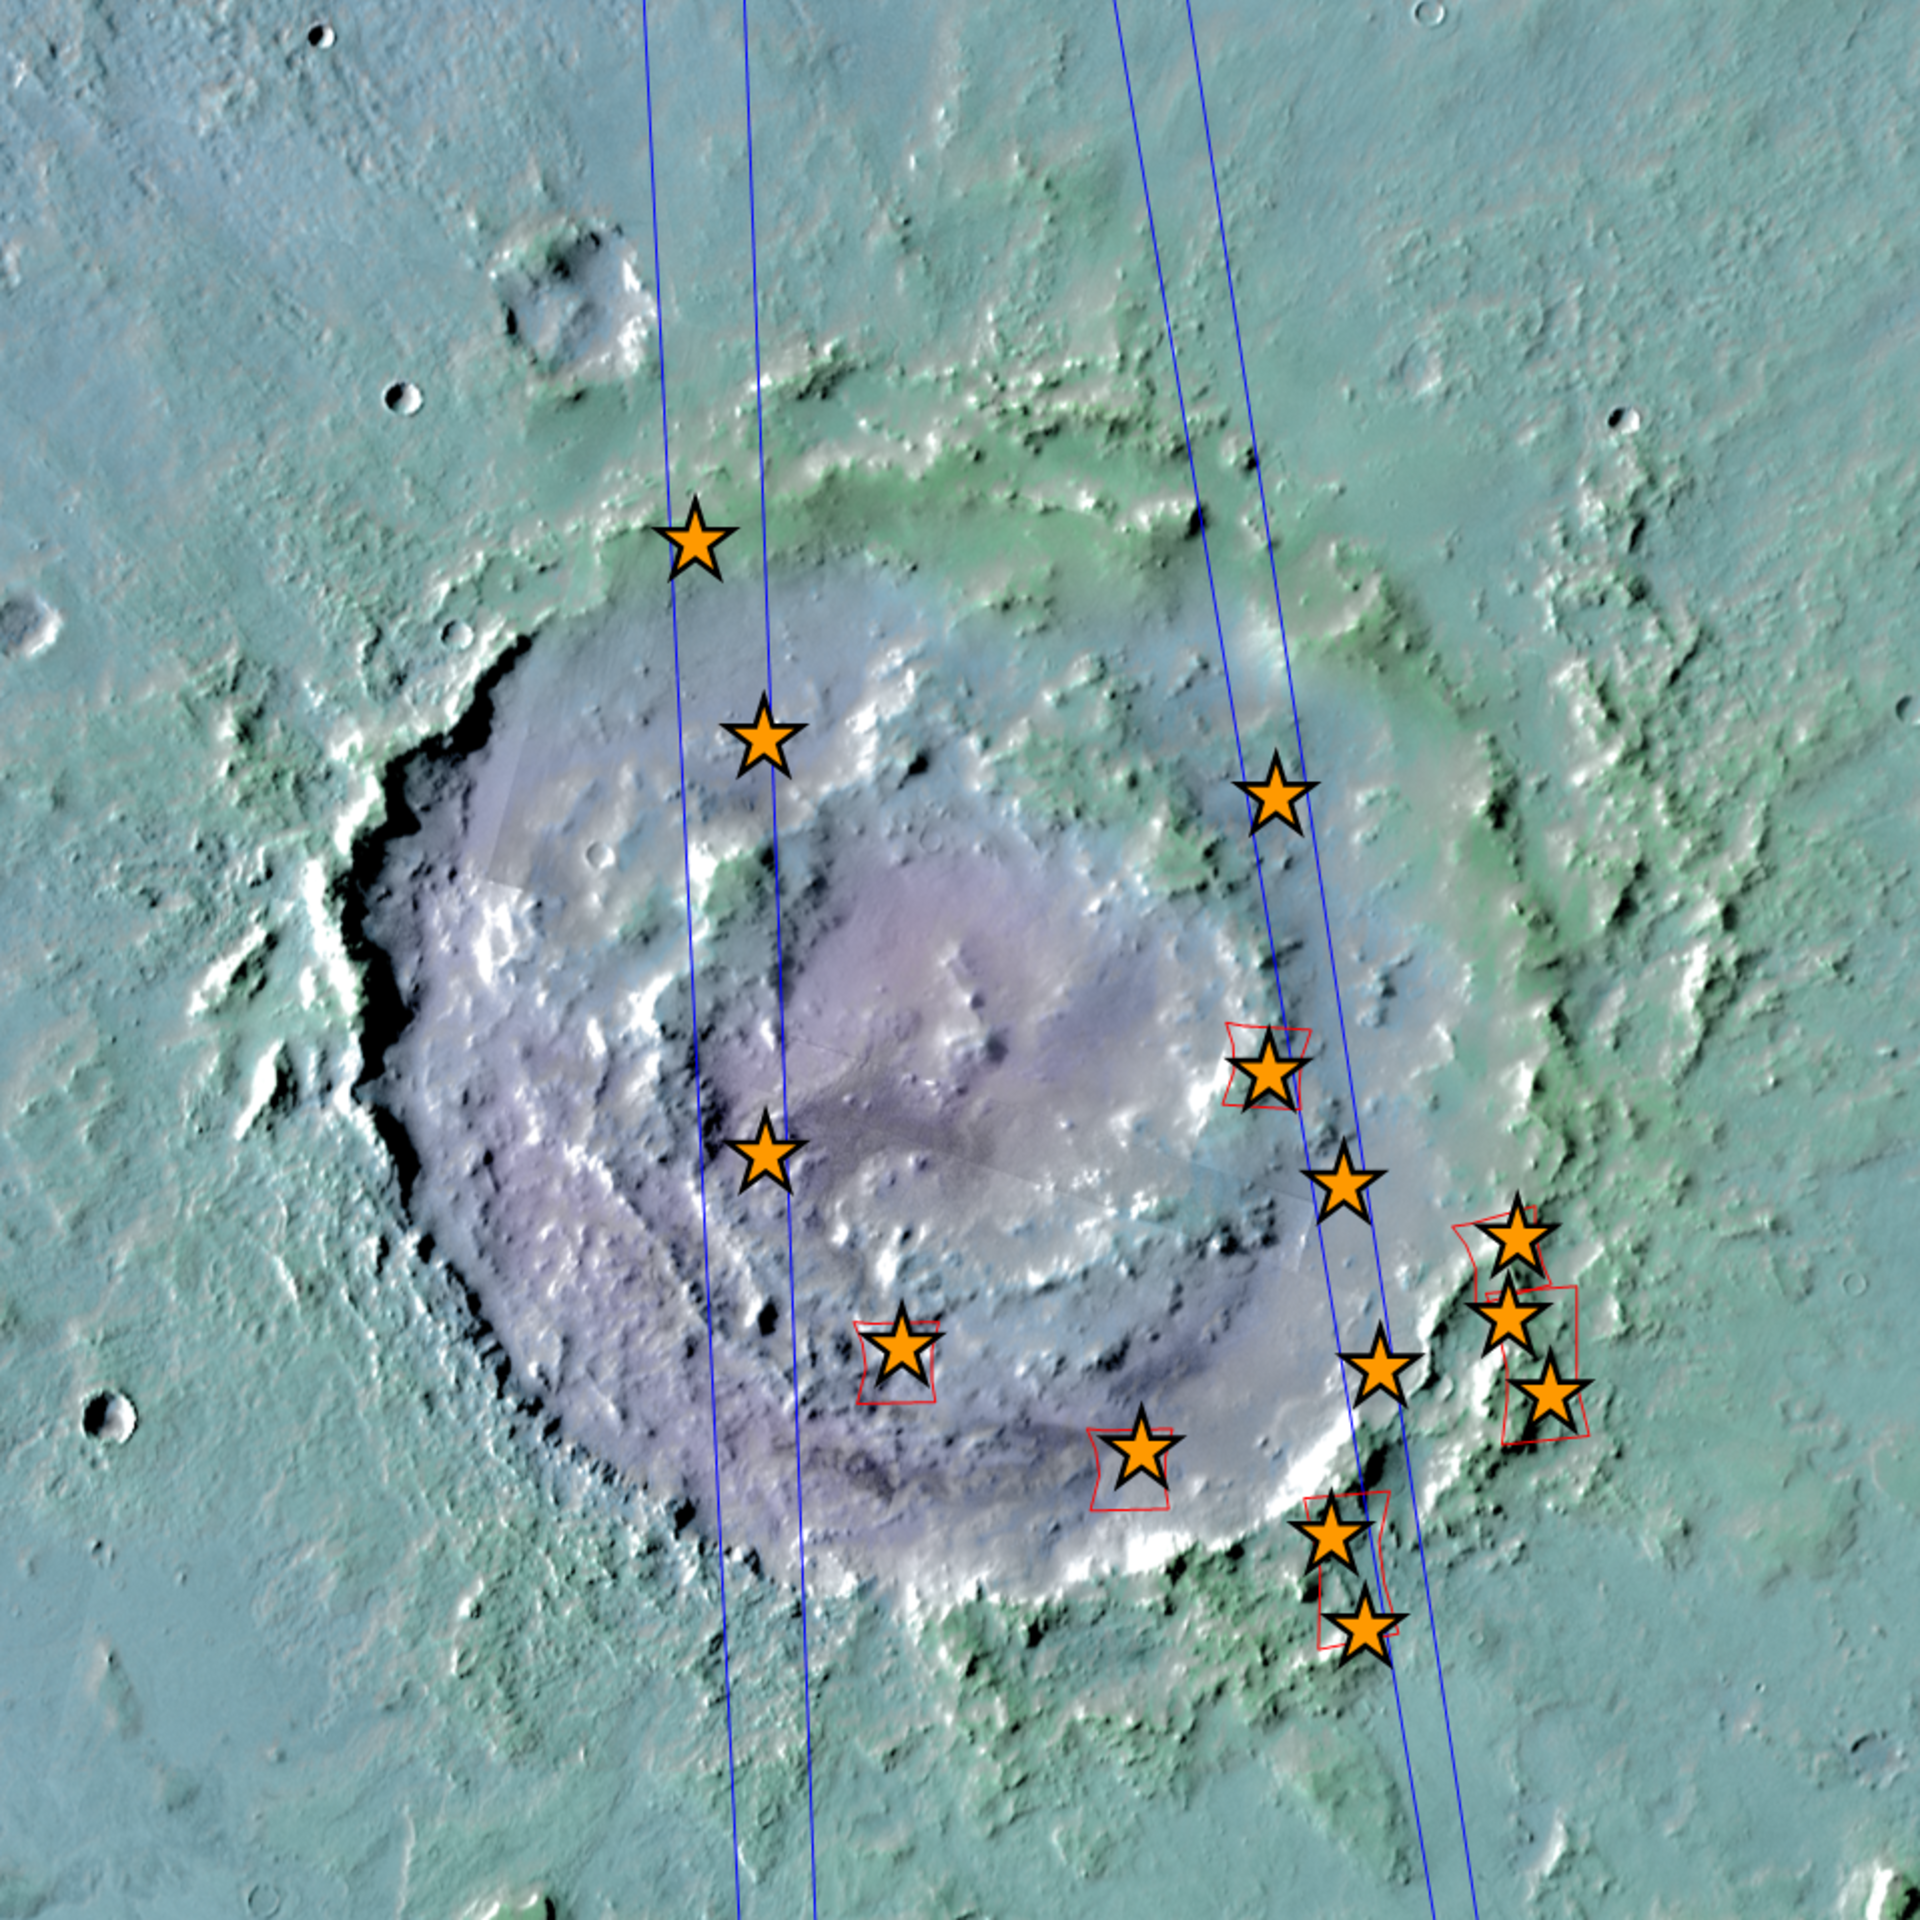 Lyot crater and the locations of the hydrated minerals